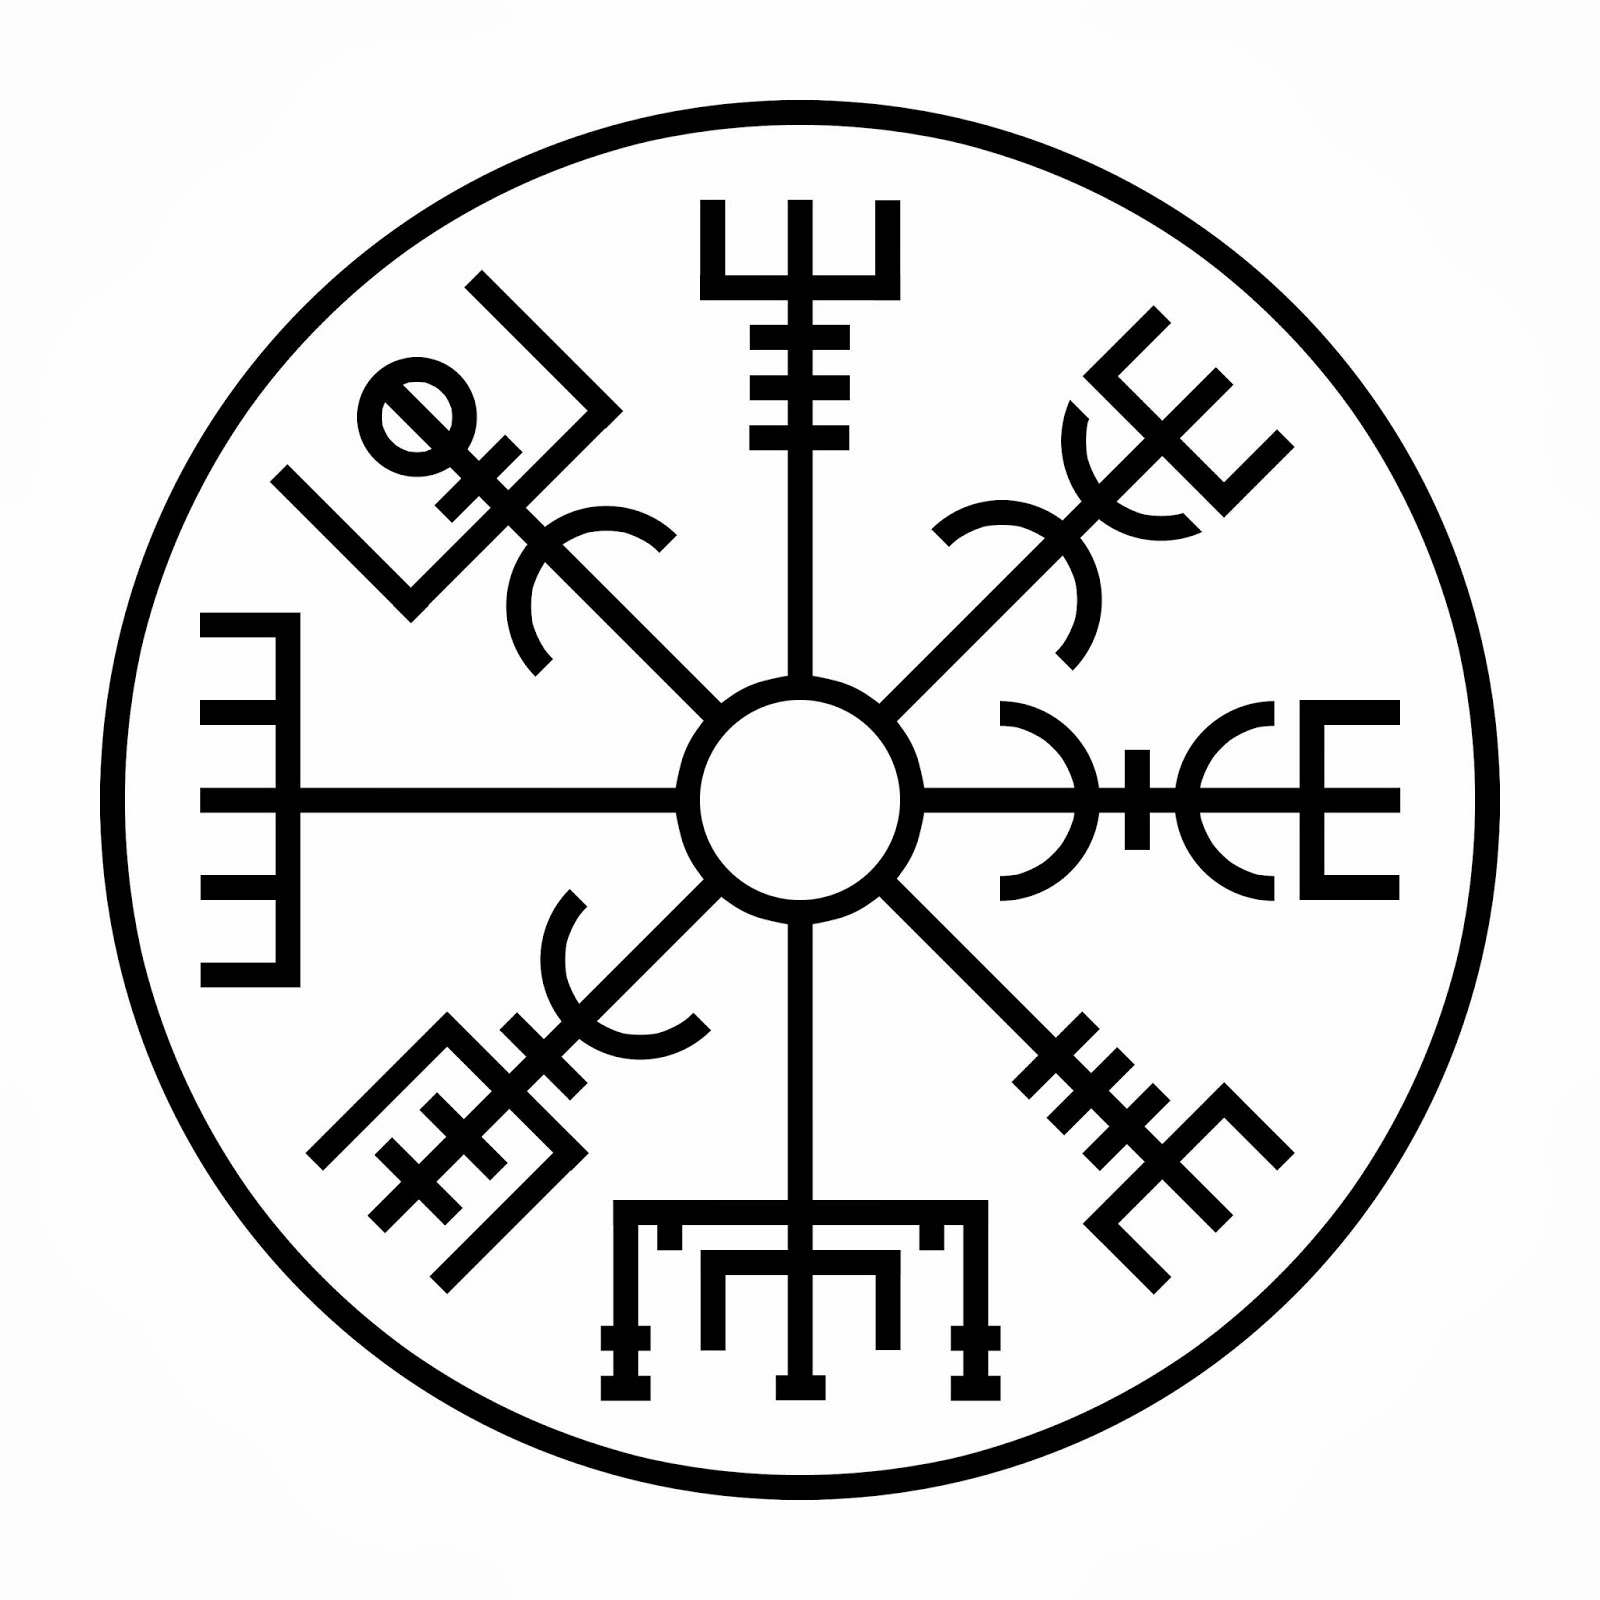 Vegvisir Meaning: The Slippery Spirit: Travel Well